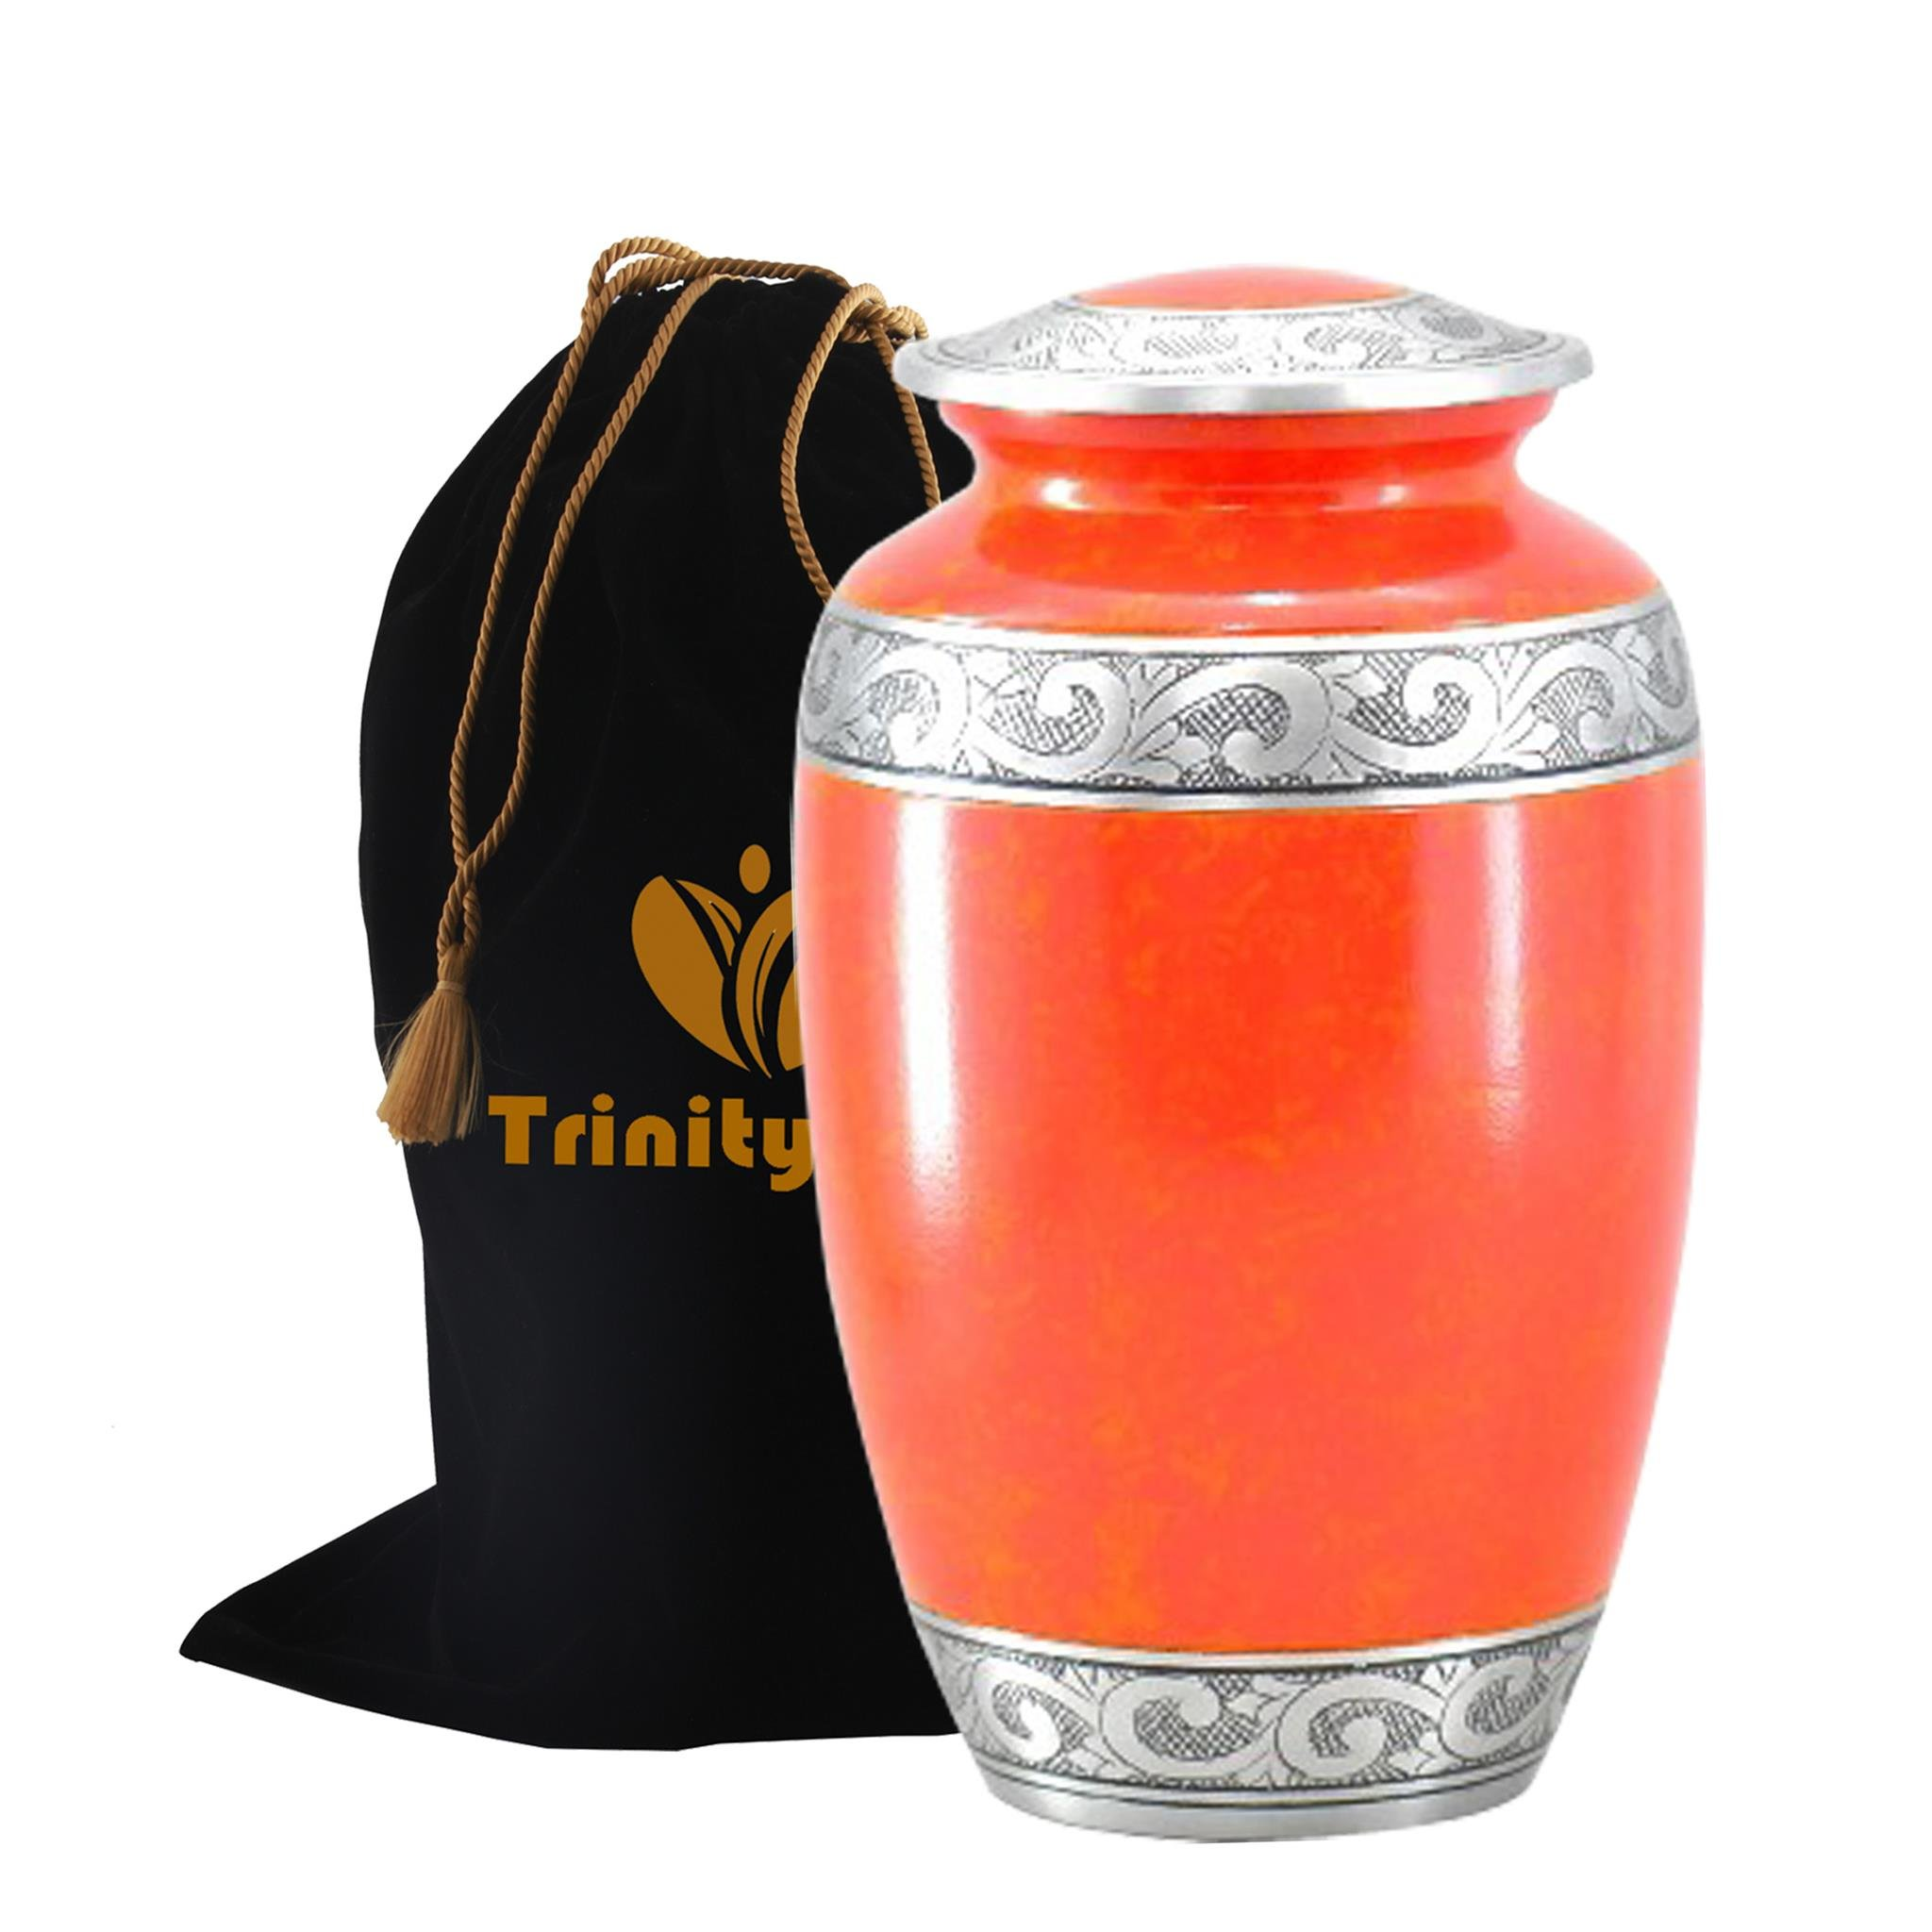 Beautiful Autum Cremation Urn - Beautifully Handcrafted Adult Funeral Urn - Solid Metal Funeral Urn - Affordable Urn for Human Ashes with Free Velvet Bag